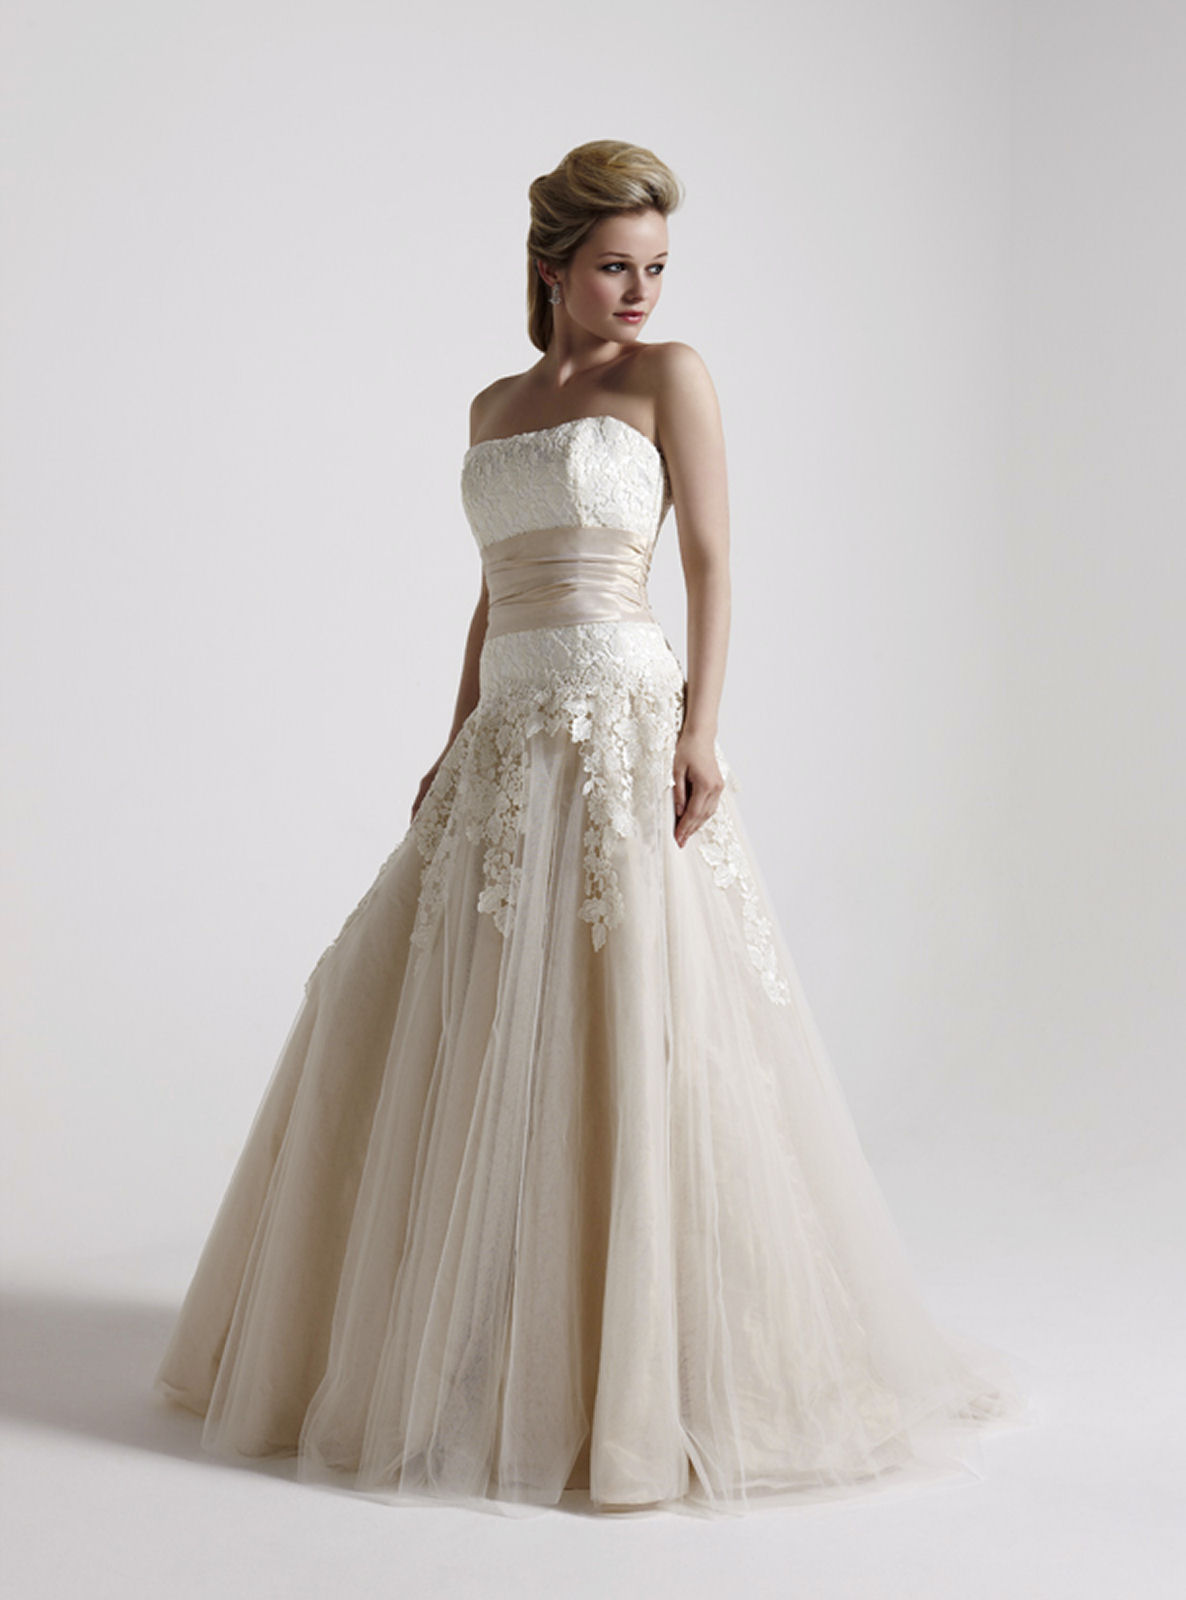 Wedding dresses for women over 40 great ideas for for Wedding dresses for over 40